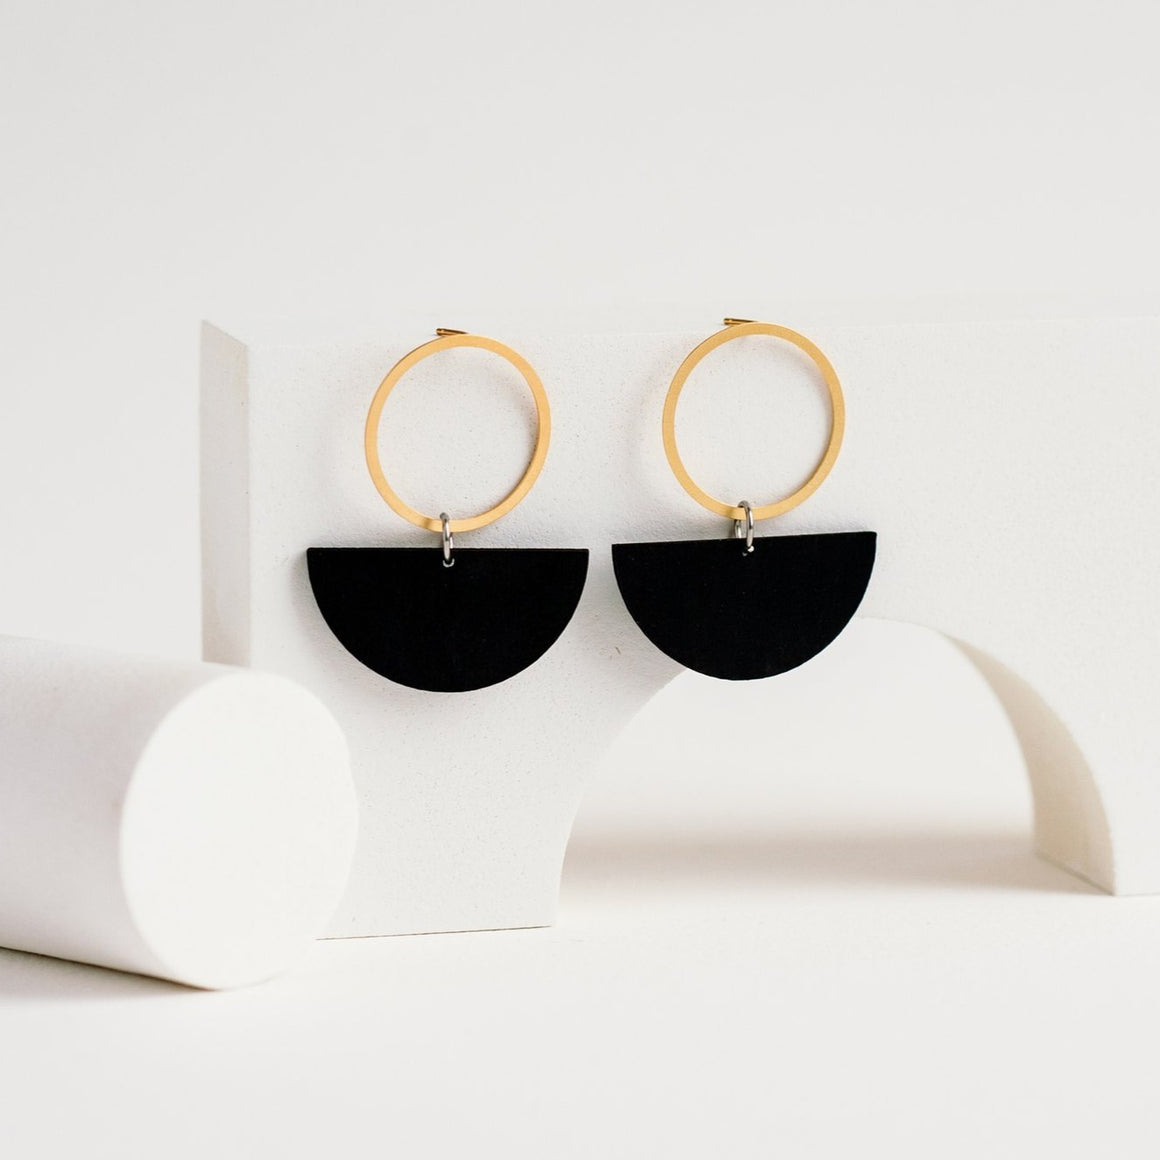 Linda Marek Designs Gold Plated Brass Earrings - Lunar Hoop